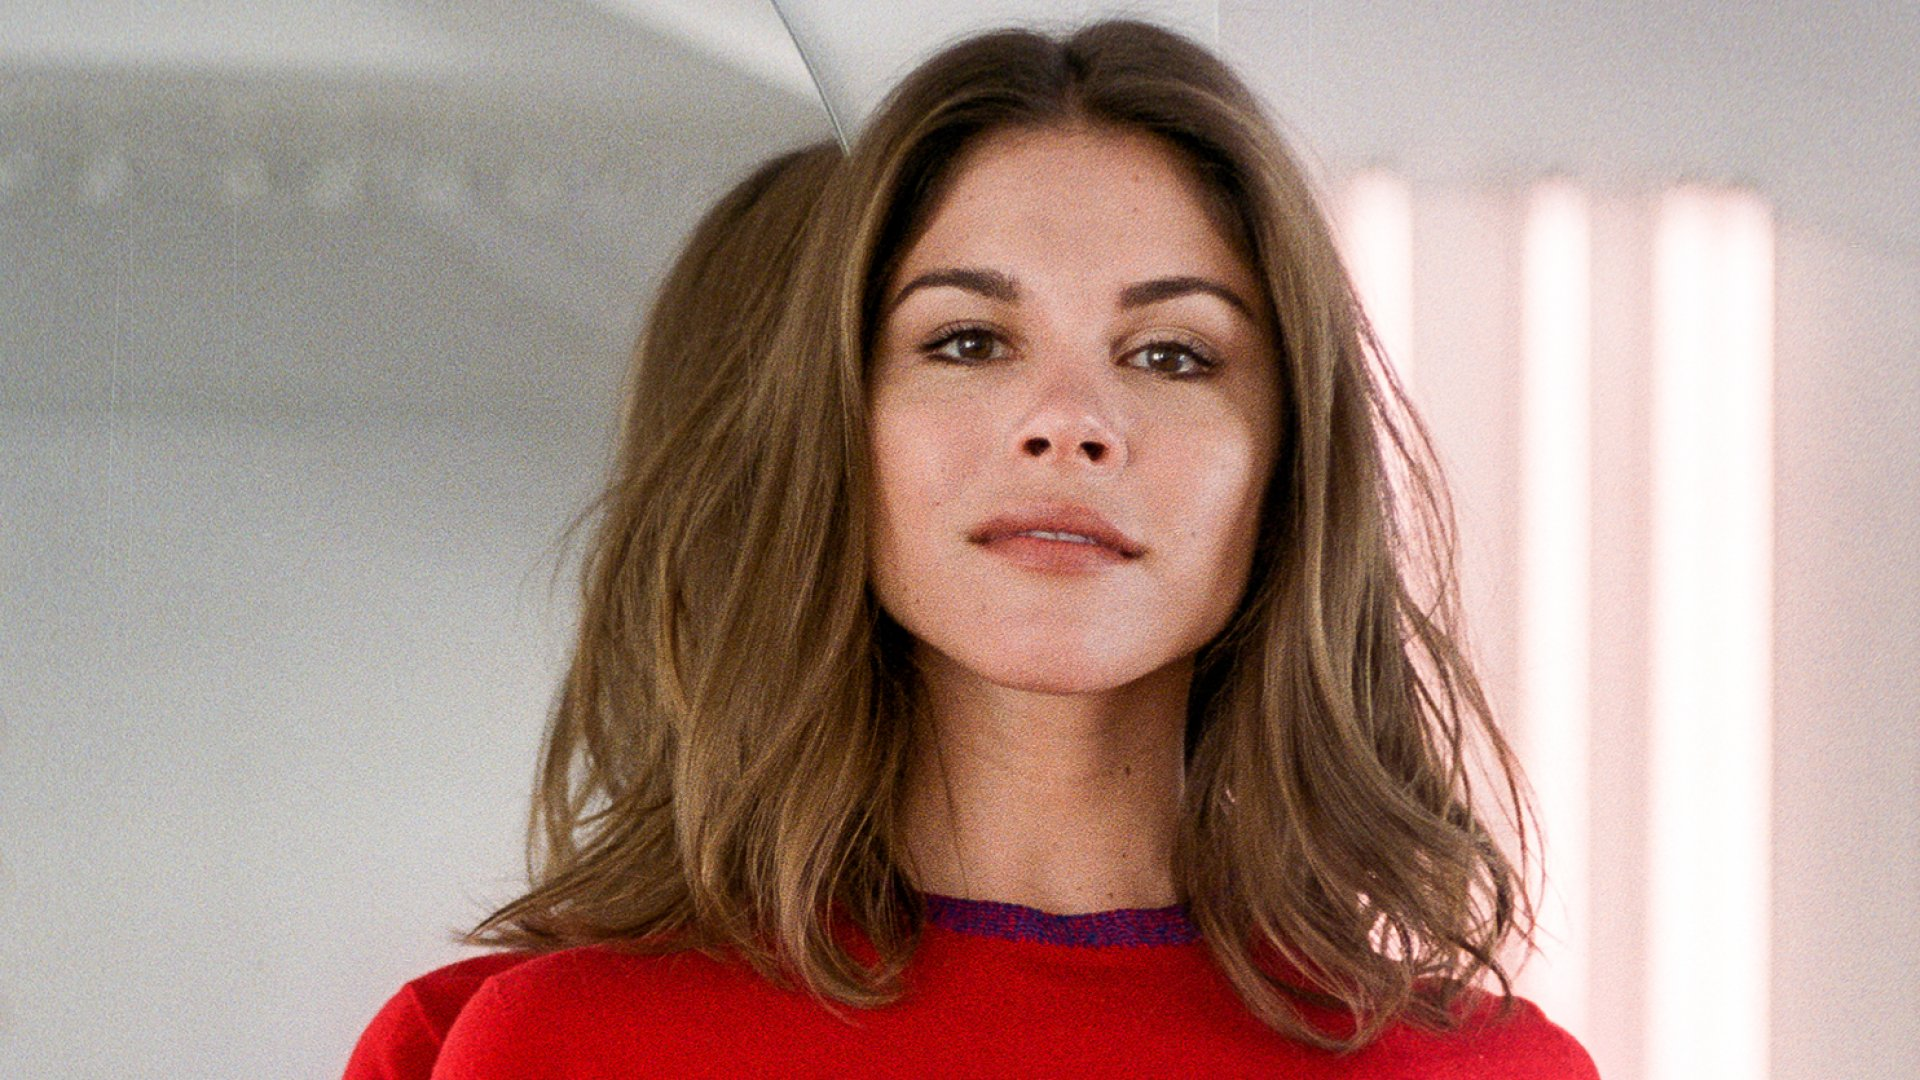 Emily Weiss, founder and CEO of Into the Gloss and Glossier.